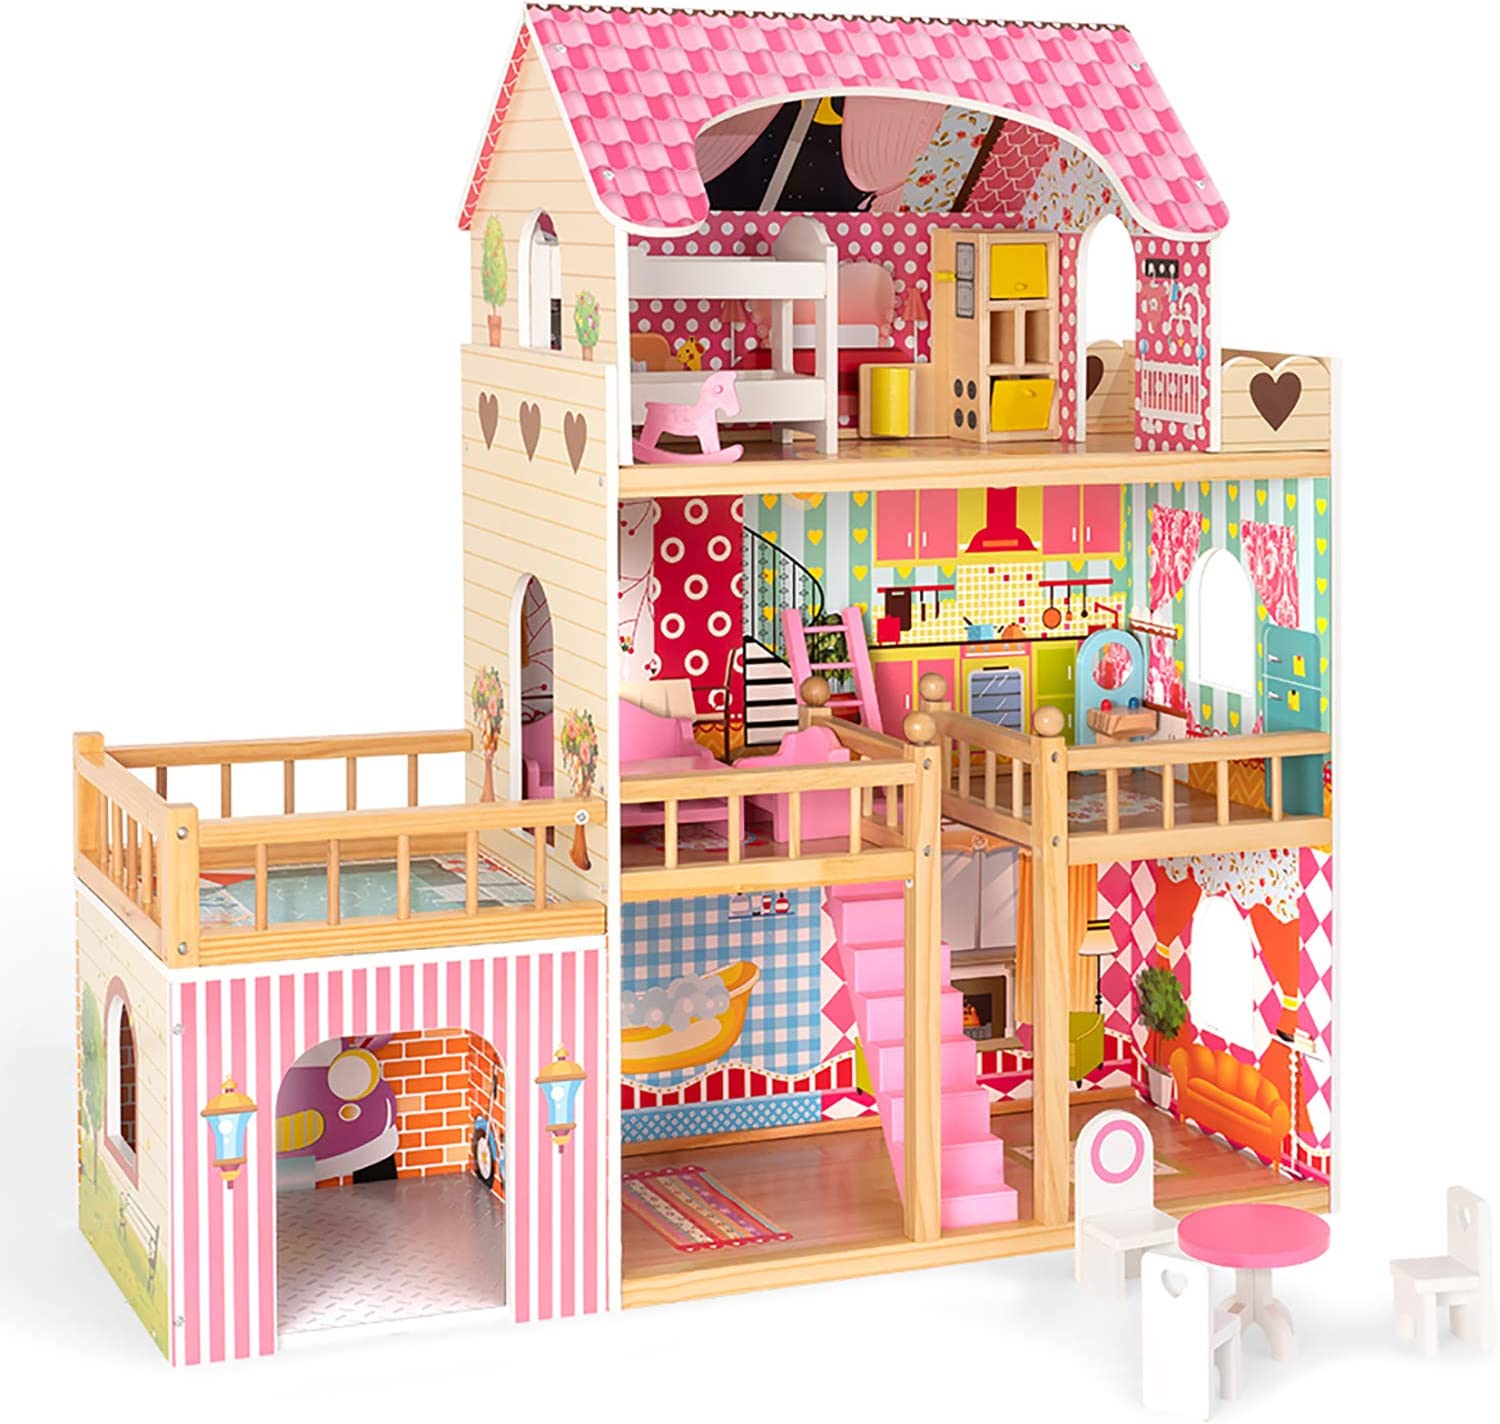 ROBUD Wooden Dollhouse with Furniture Max 90% OFF Set Denver Mall Play House Gift Doll